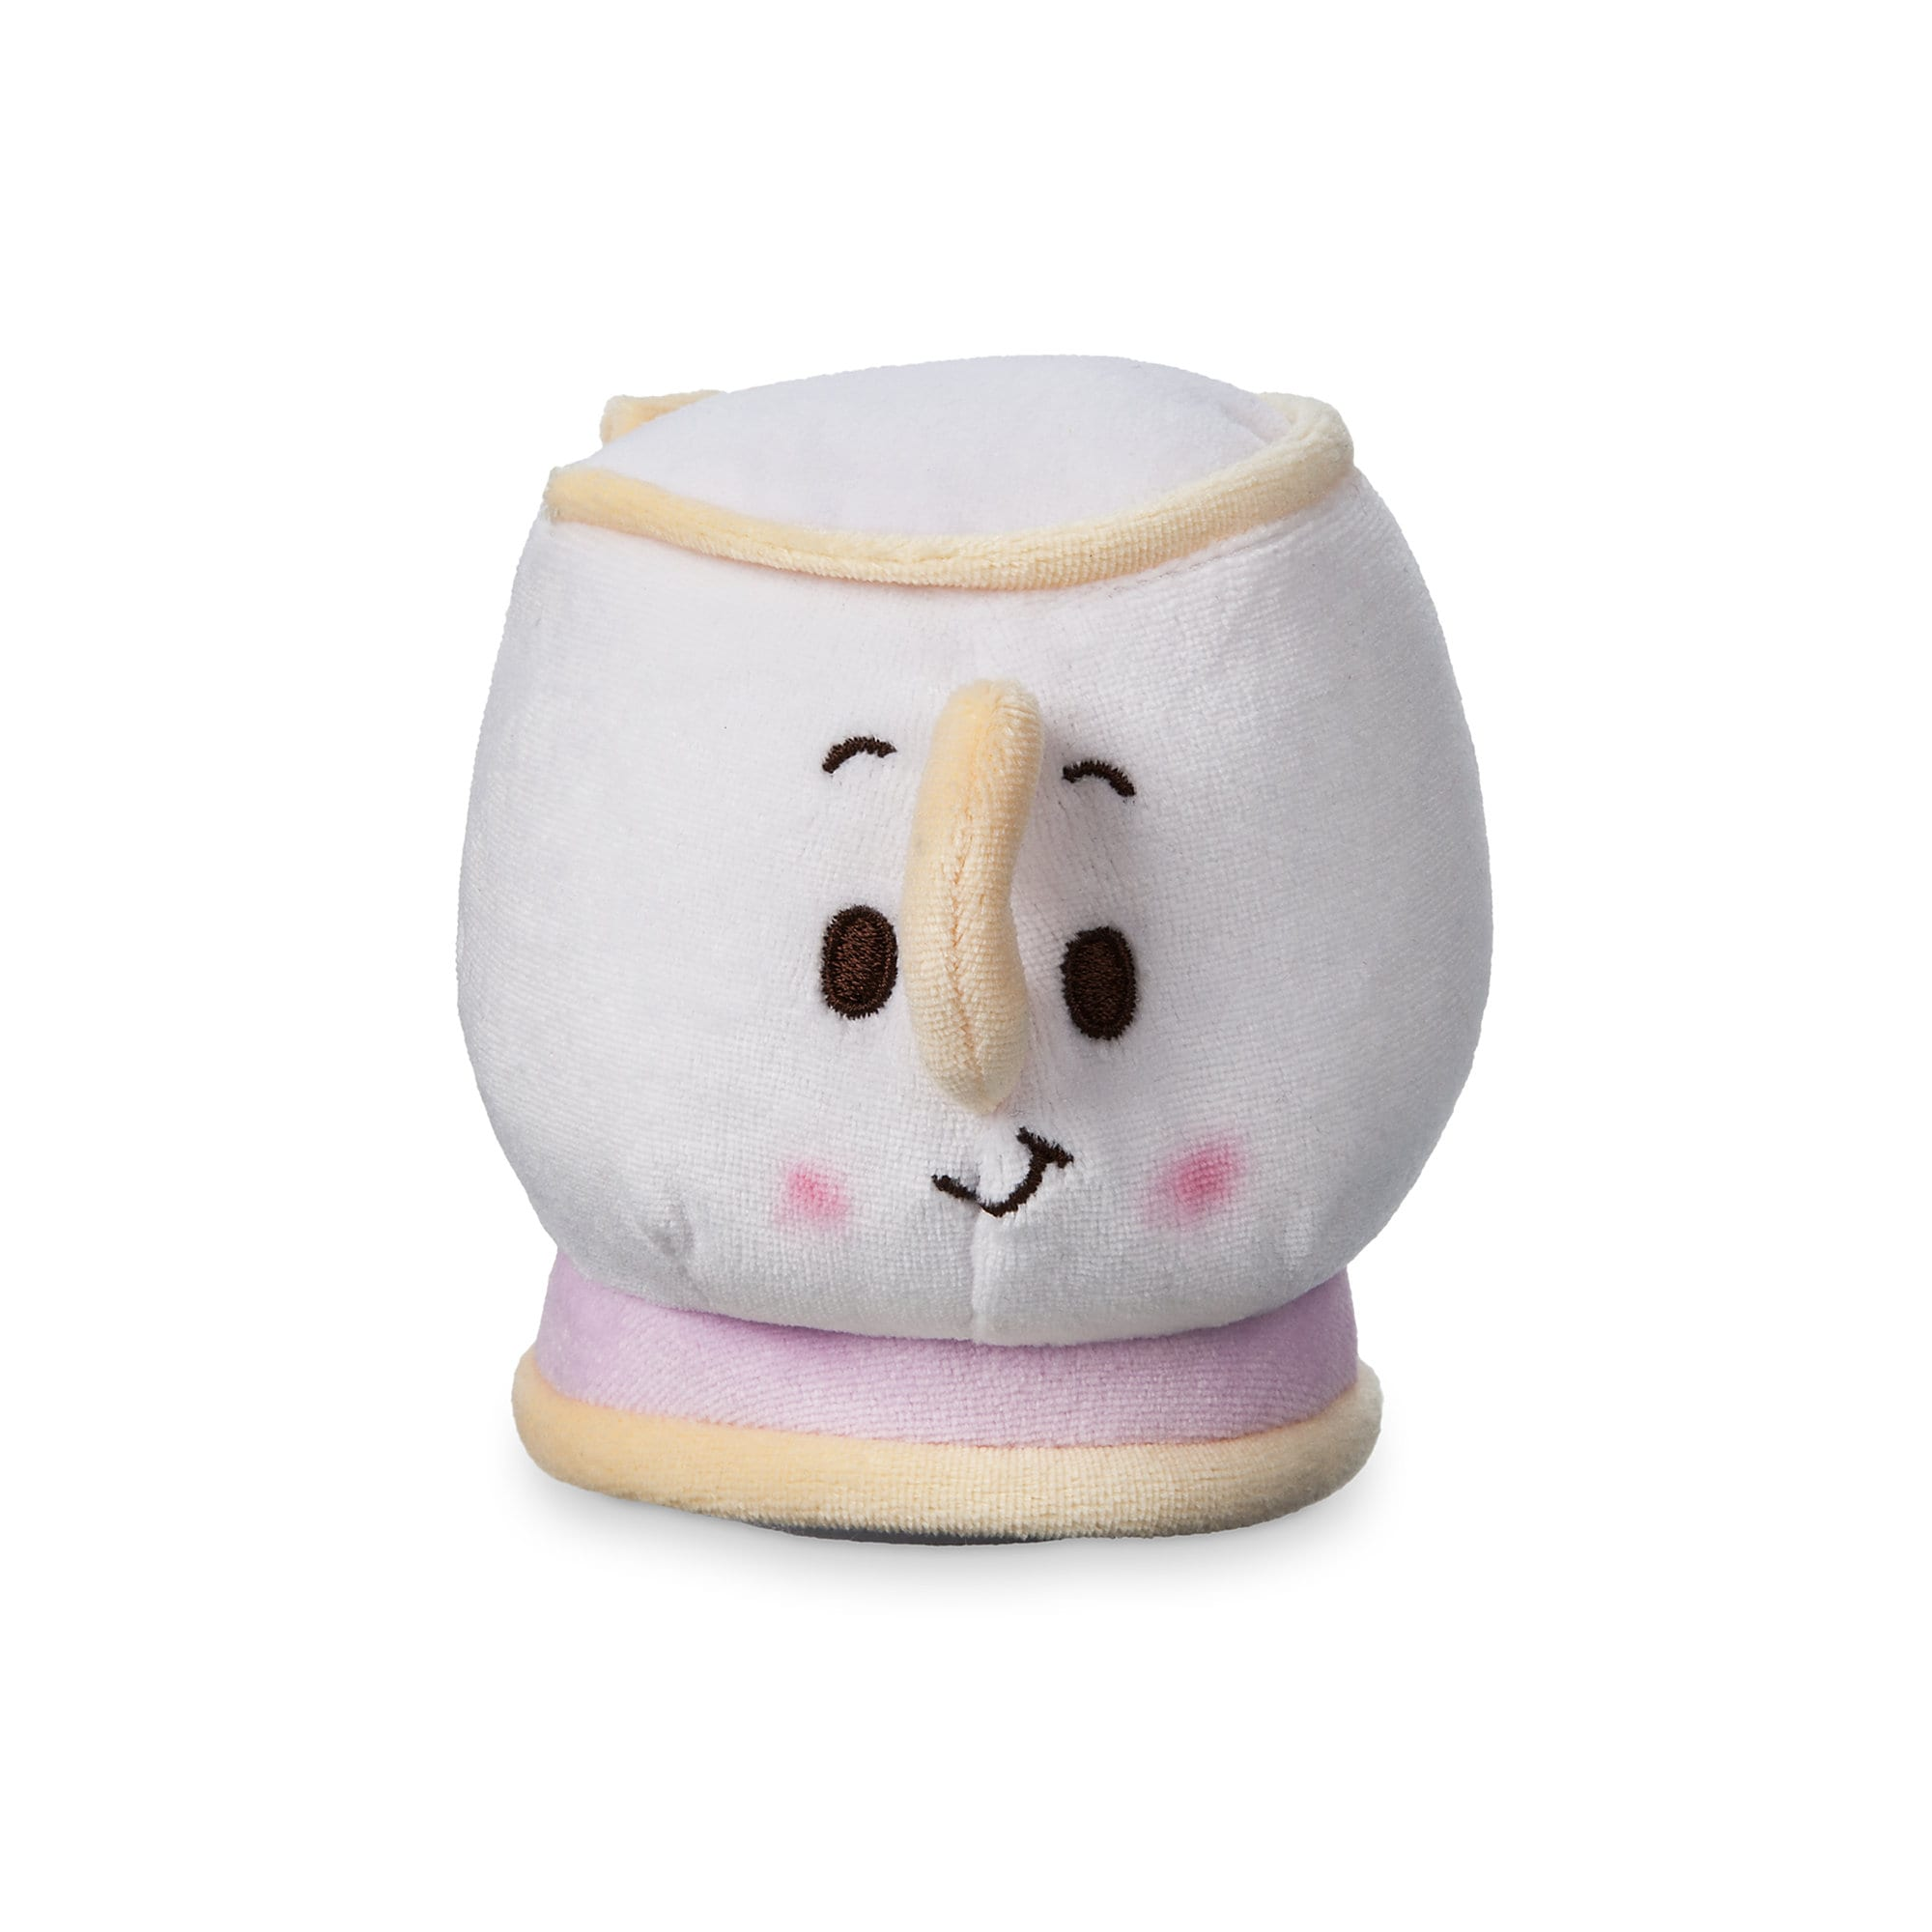 Chip Scented Ufufy Plush - Small